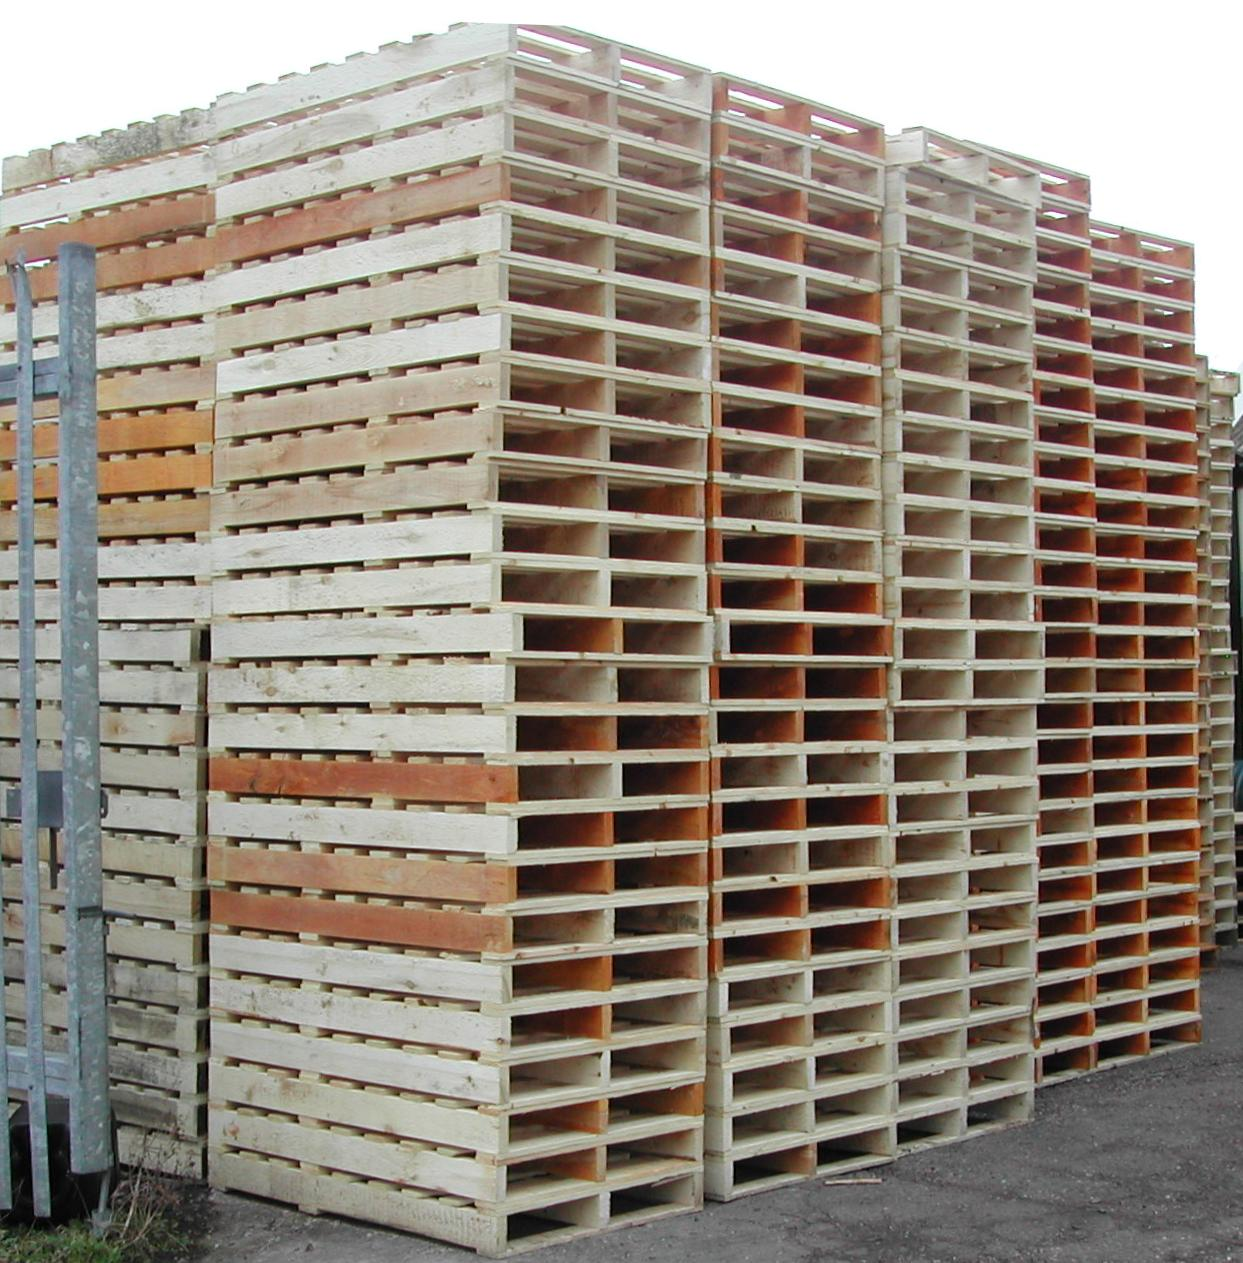 http://www.arrivalexpress.co.uk/wp-content/uploads/pallets_stacked.jpg